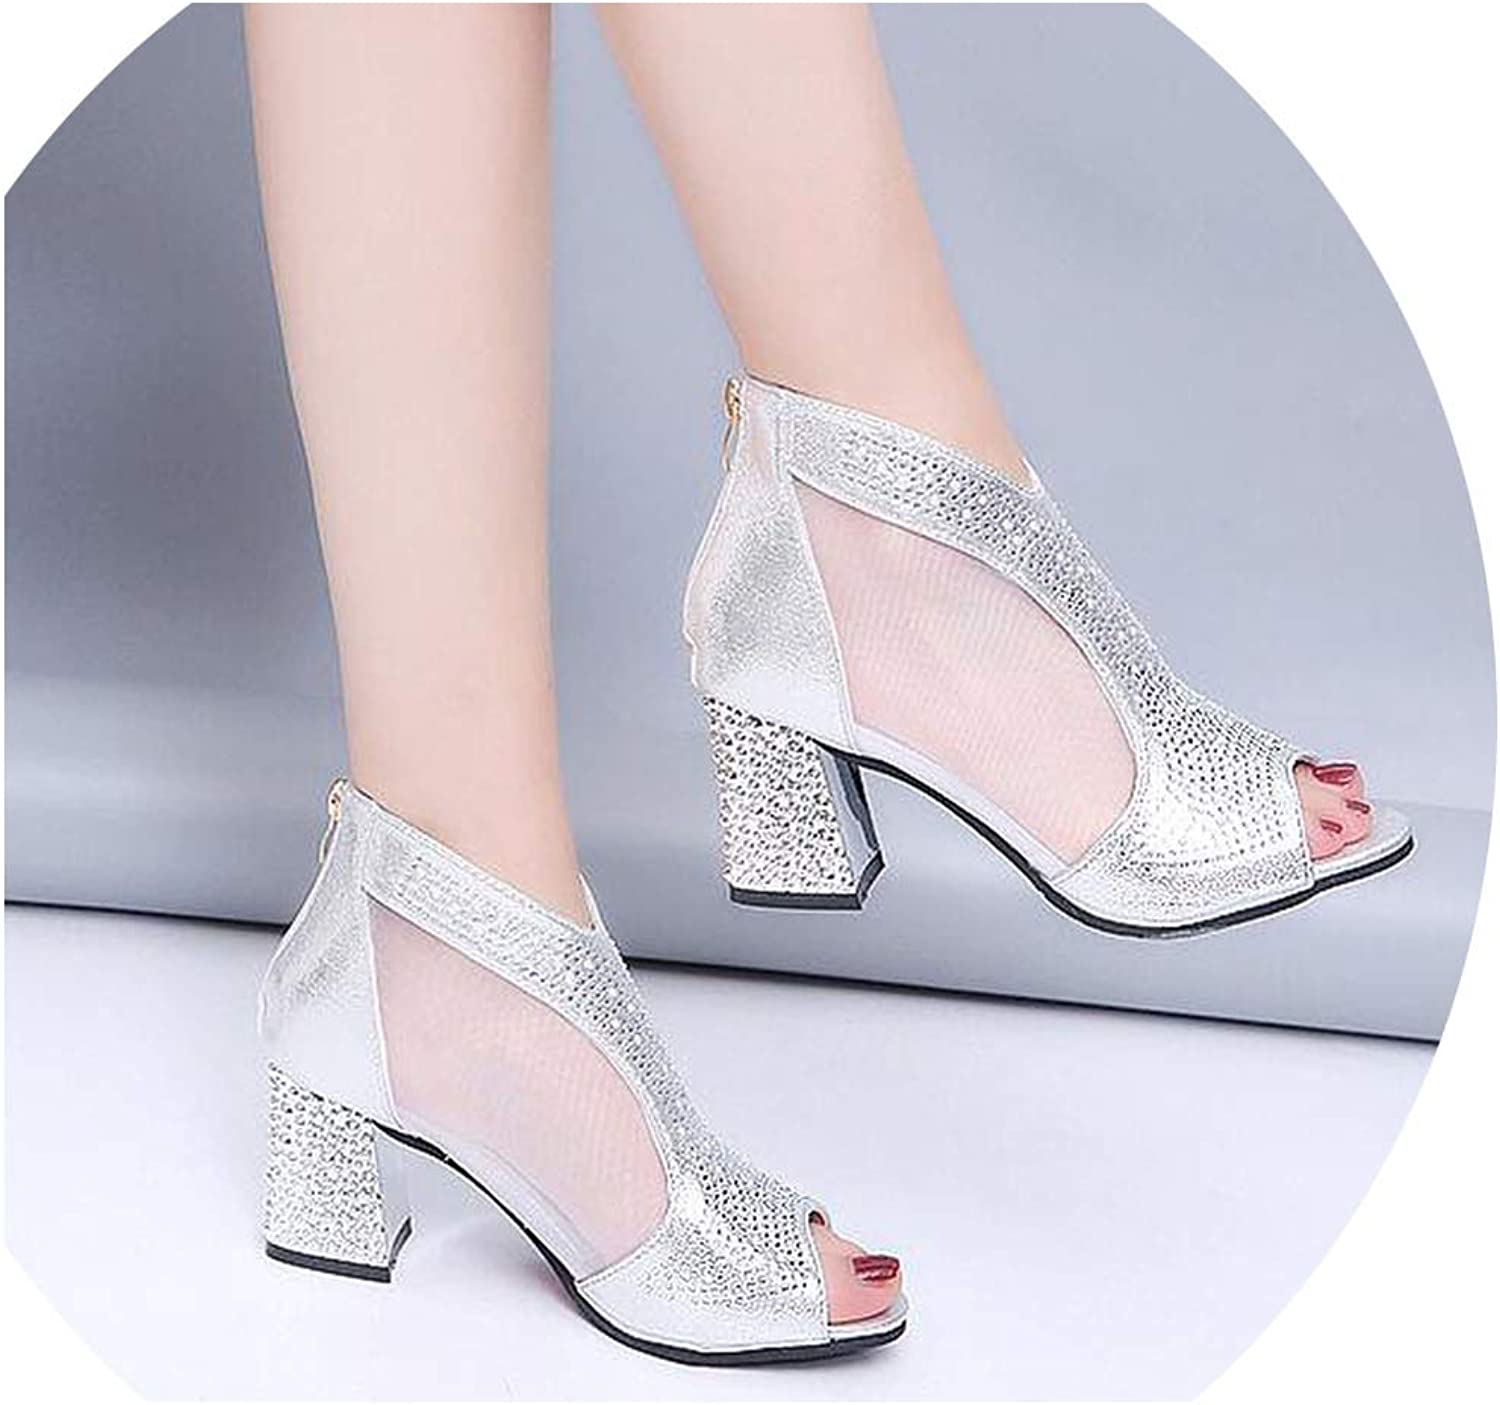 Boom-moon Sandals Bling 7cm High Heels Square Heel Women shoes Wedding shoes